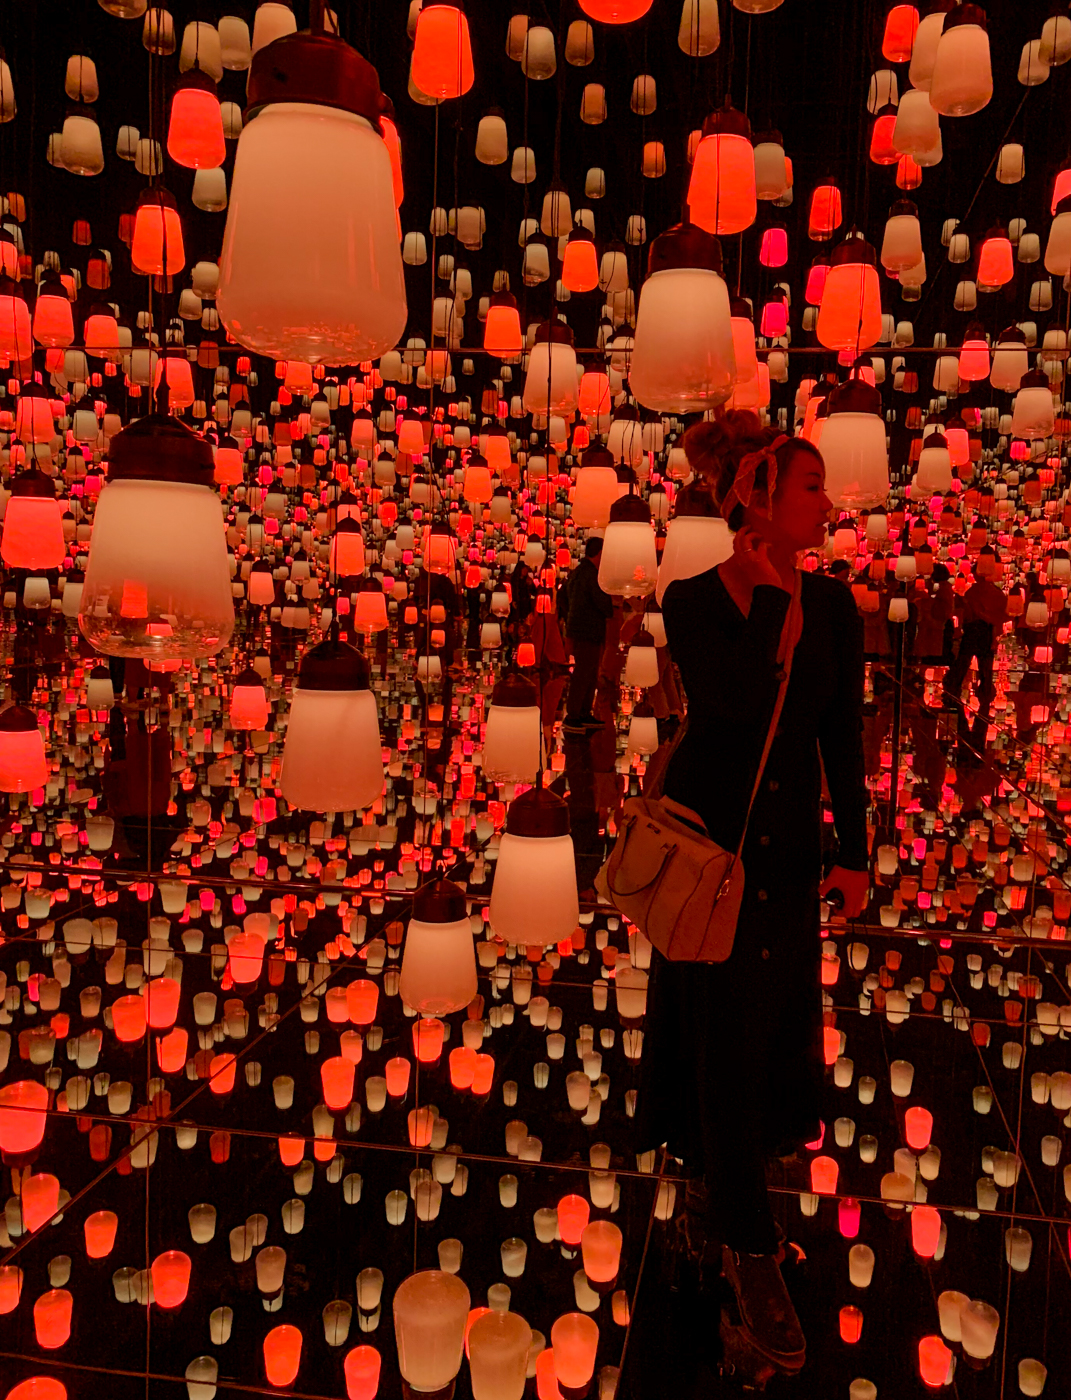 TeamLab Borderless Exhibit - Forest of Resonating Lamps